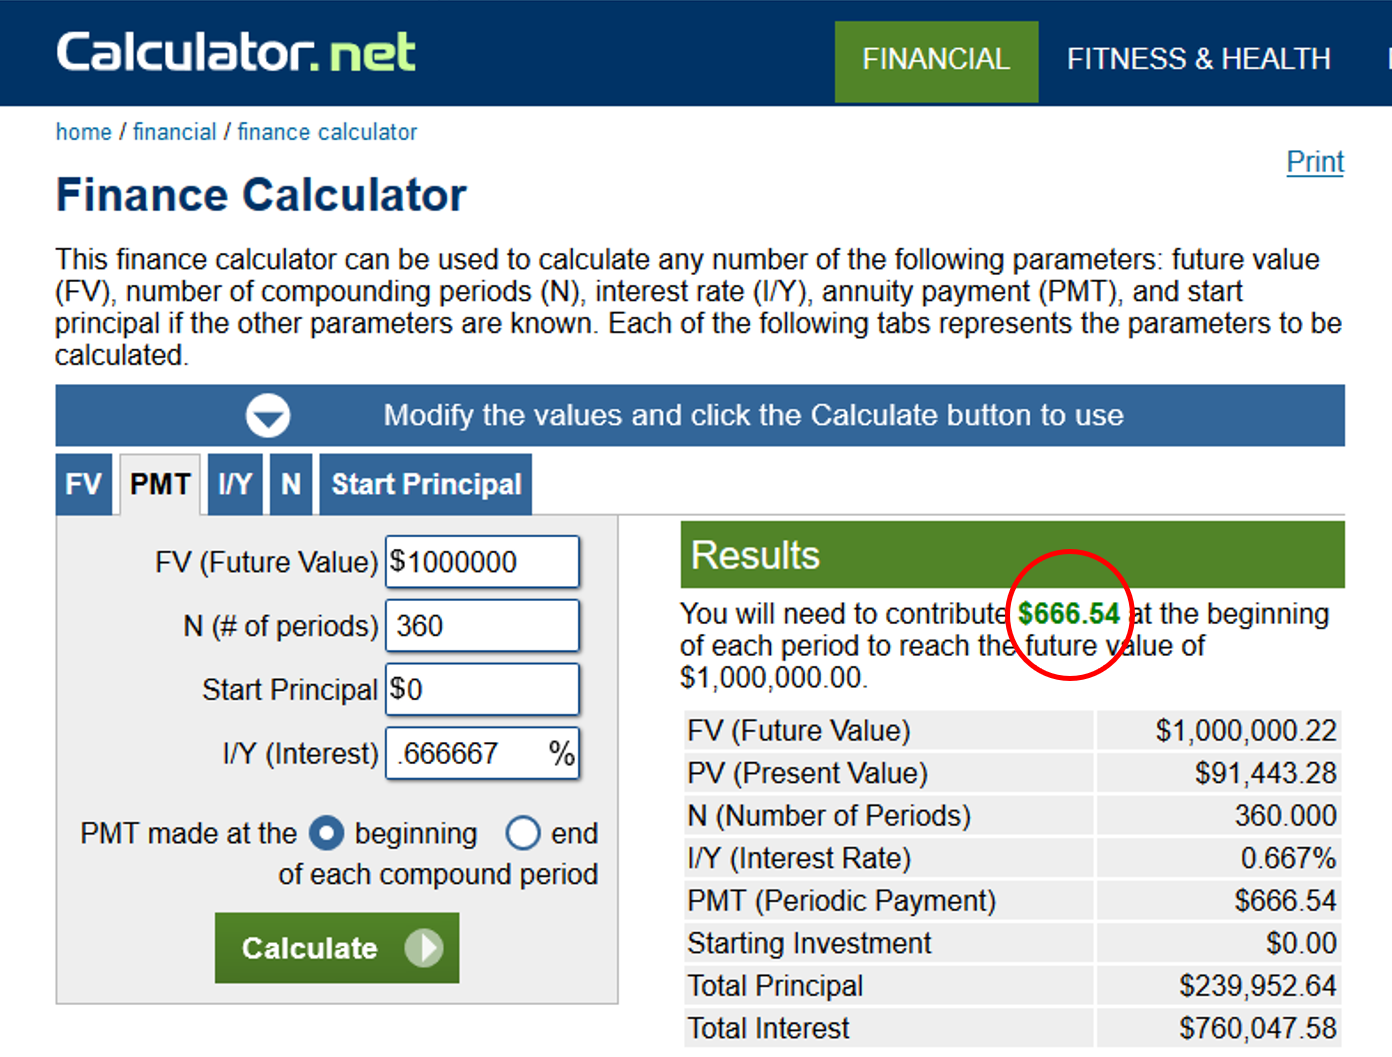 Finance Calculator Output